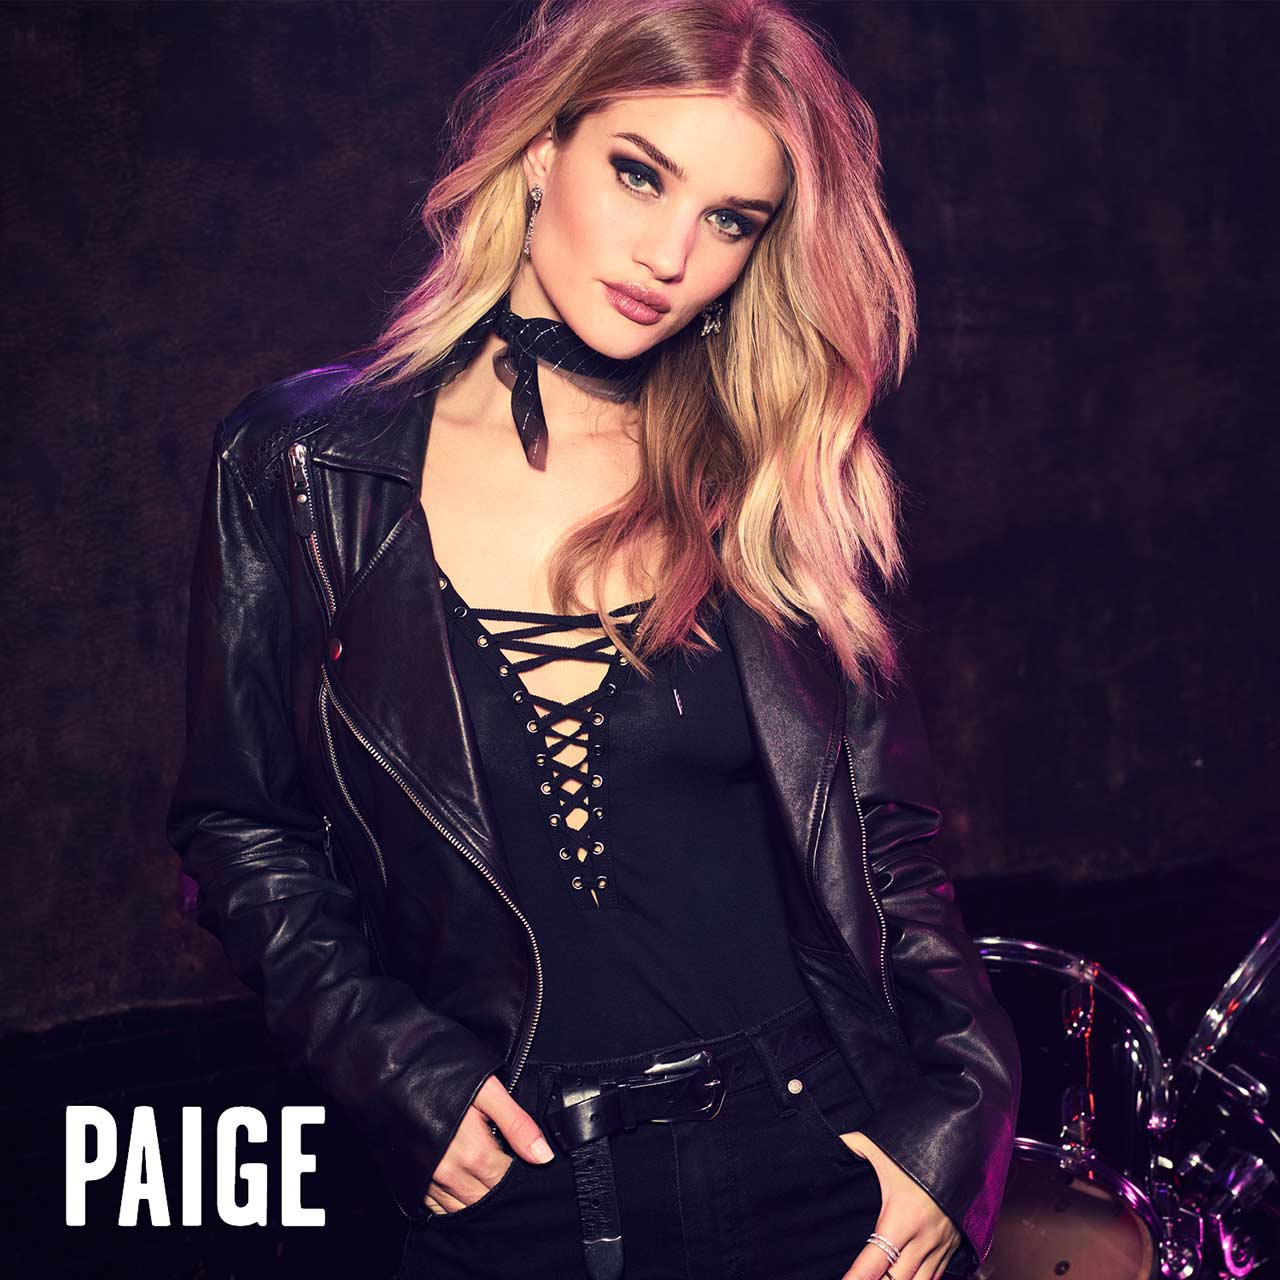 Paige-Rosie-Huntington-Whiteley-Fall-16-Insta-Images